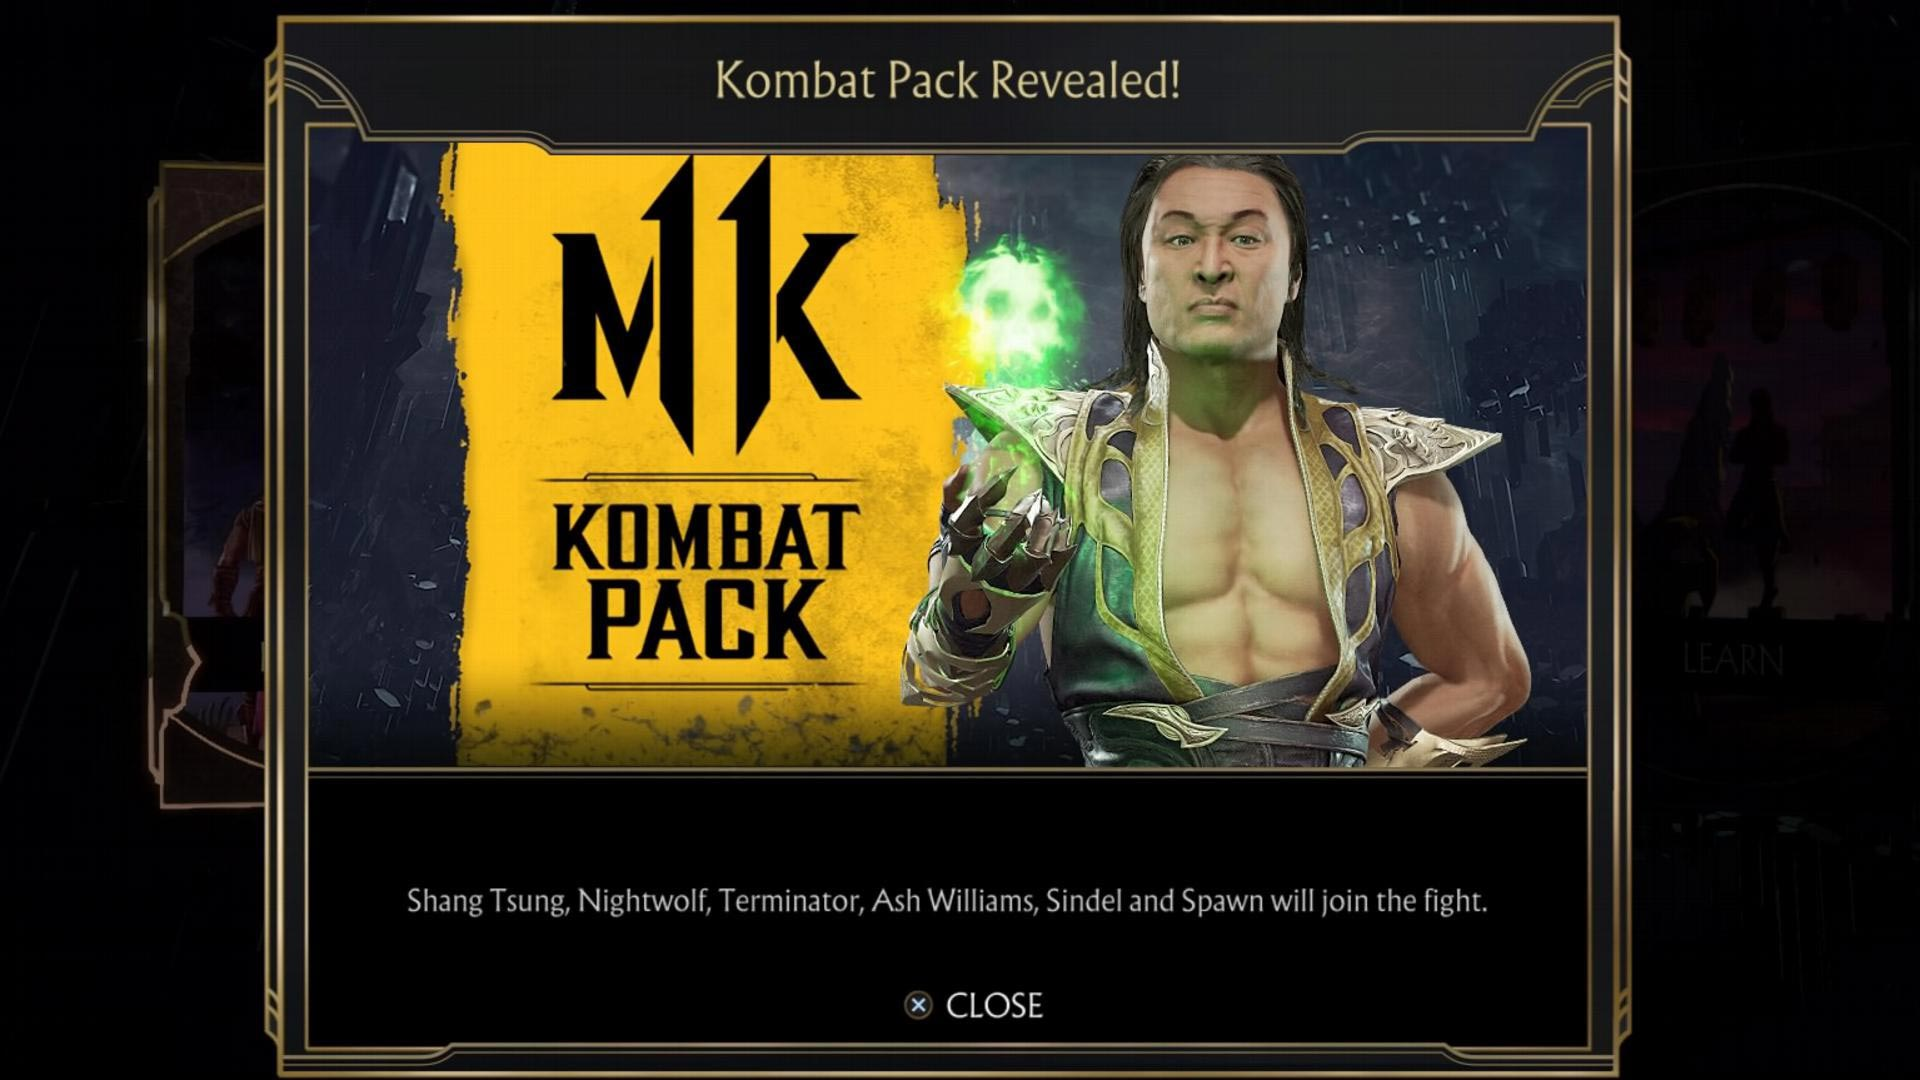 Potential in-game message error leaks another Mortal Kombat 11 DLC characters 1 out of 3 image gallery